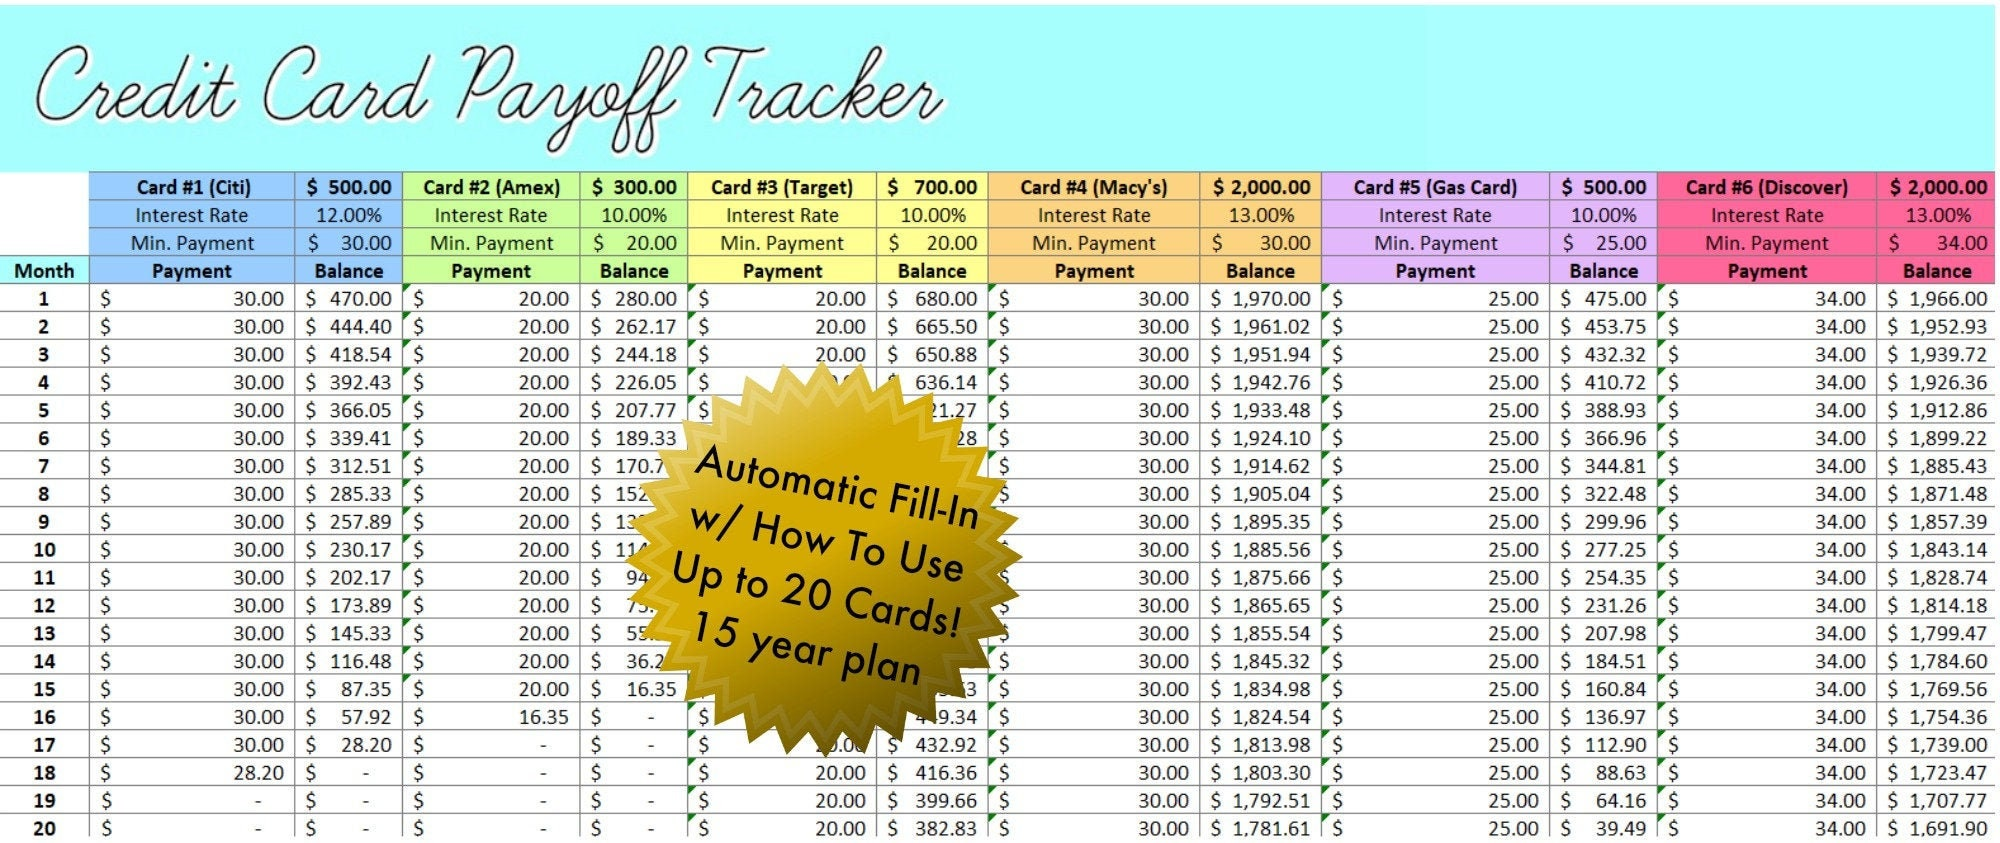 Credit Card Payoff Excel Tracker - Pay Off Credit Cards Easily! Pertaining To Credit Card Payment Spreadsheet Template